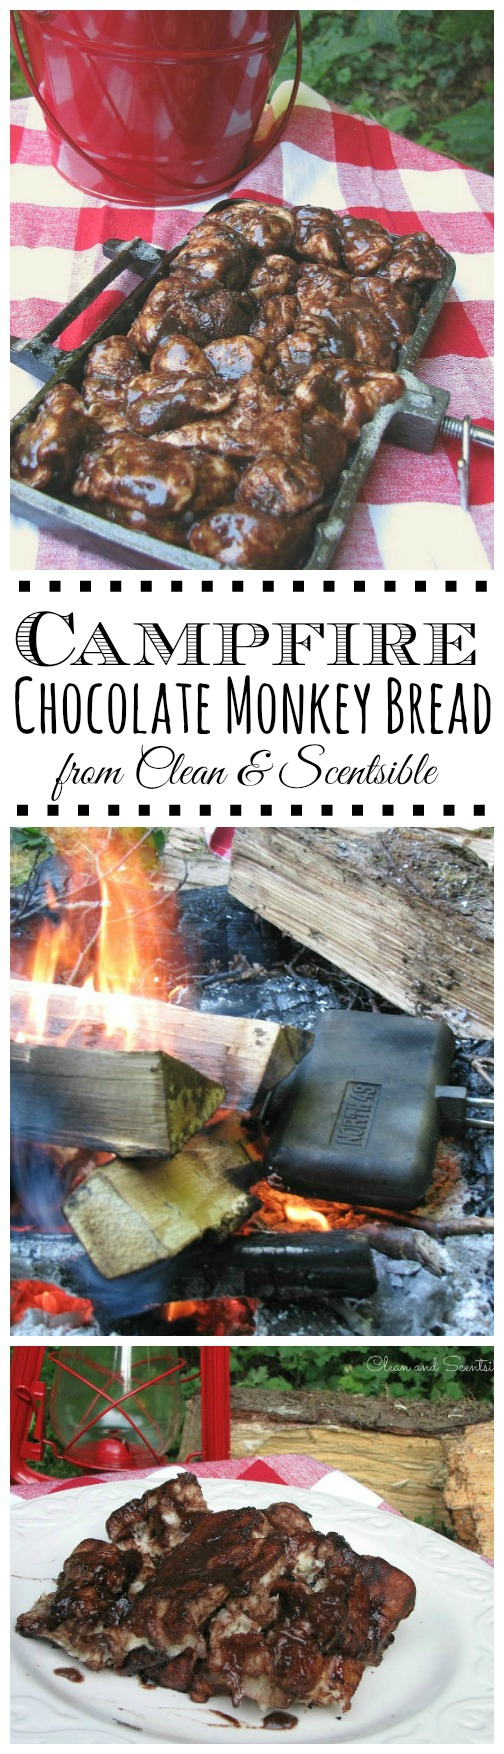 Campfire Chocolate Monkey Bread - Clean and Scentsible